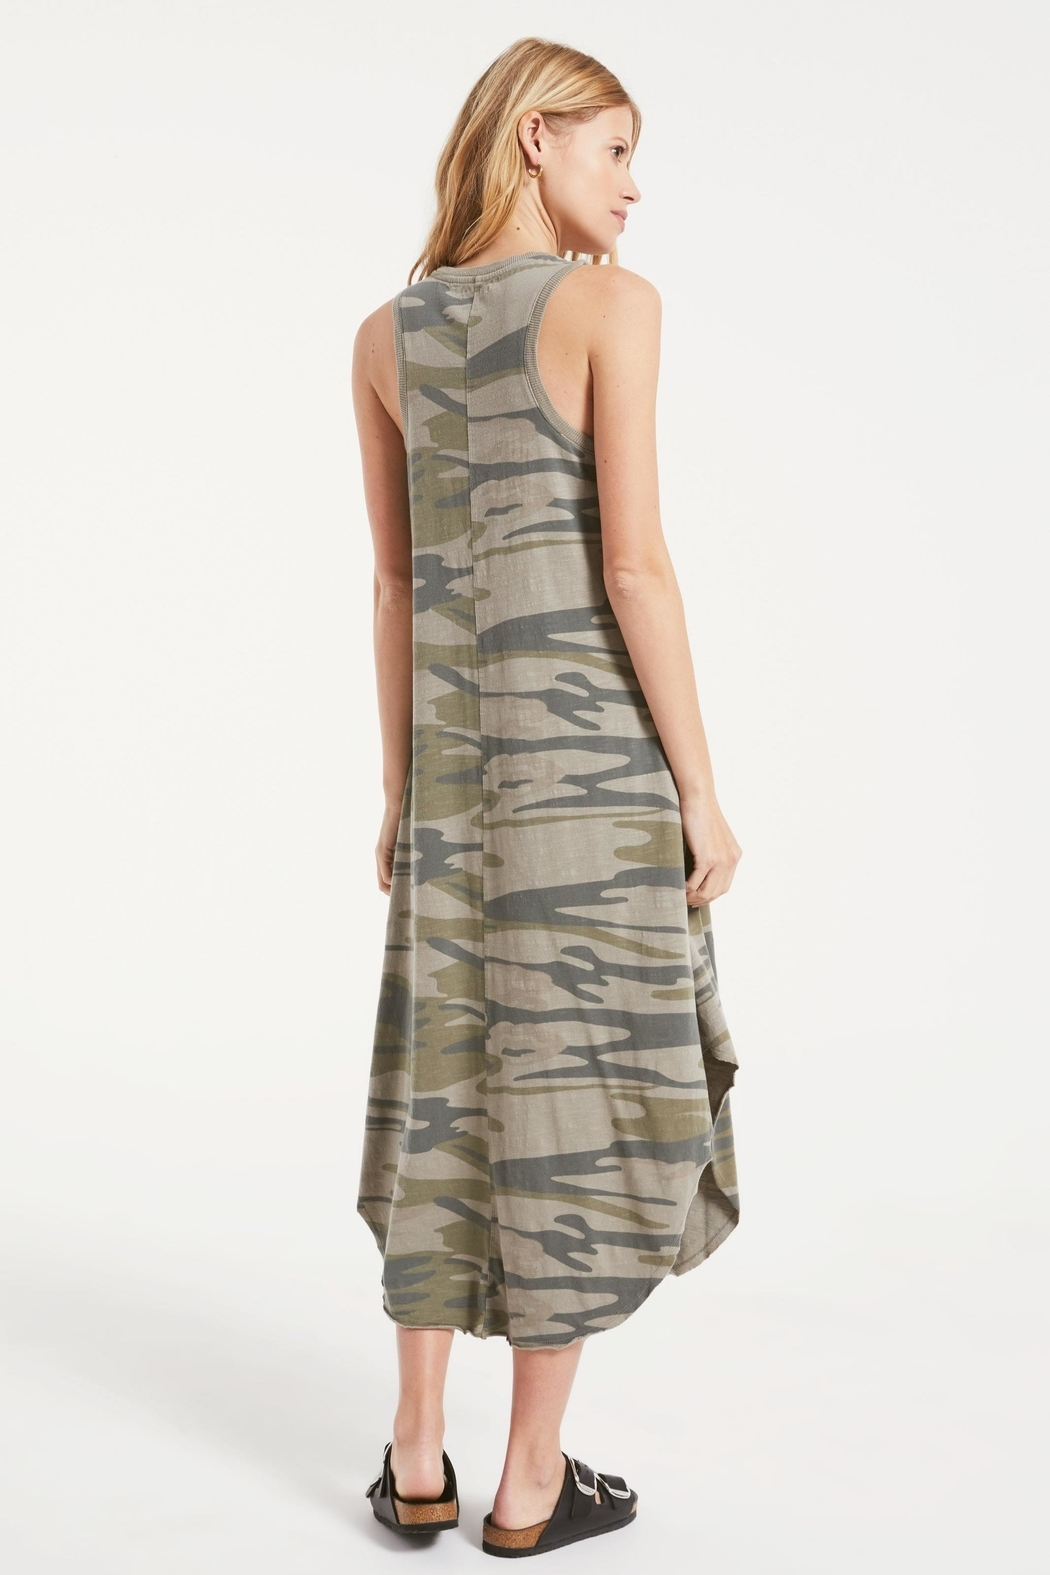 z supply Camo Reverie Dress - Side Cropped Image